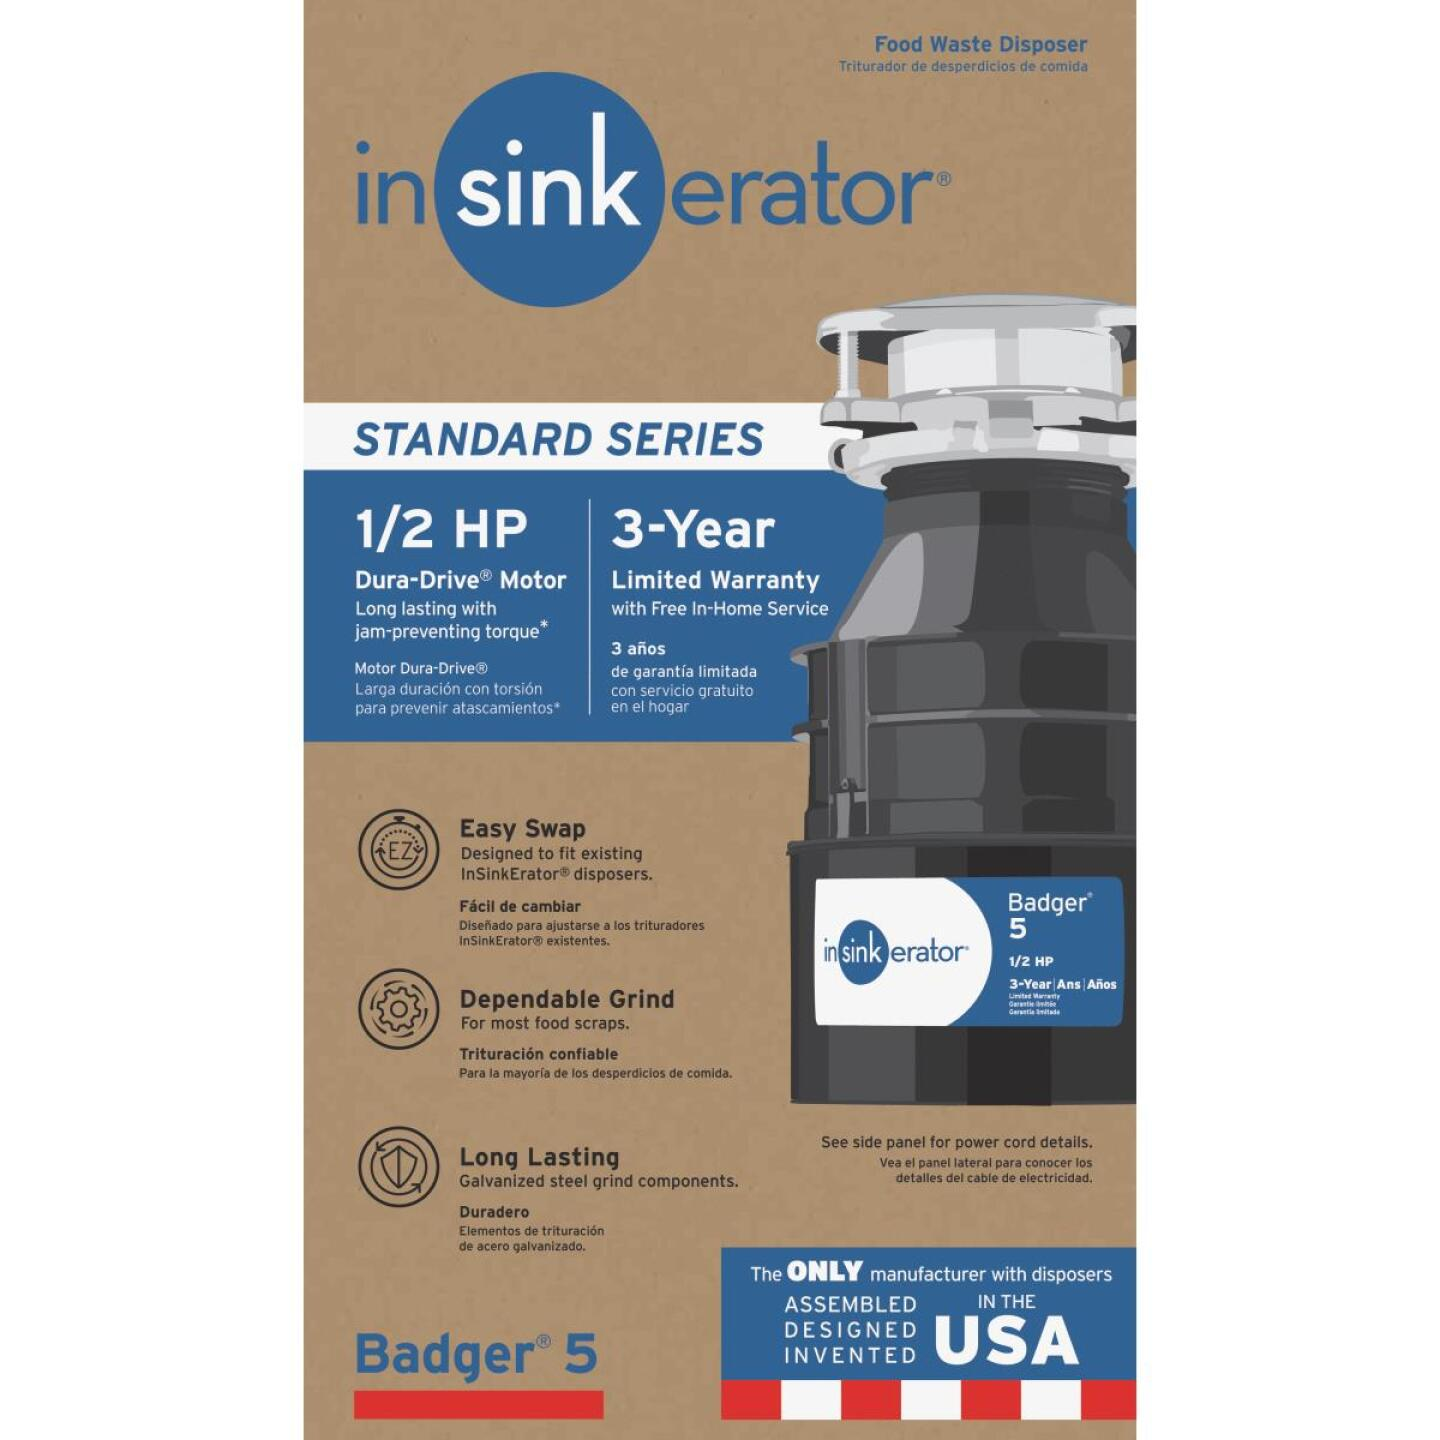 Insinkerator Badger 1/2 HP Garbage Disposal, 3 Year Warranty Image 1